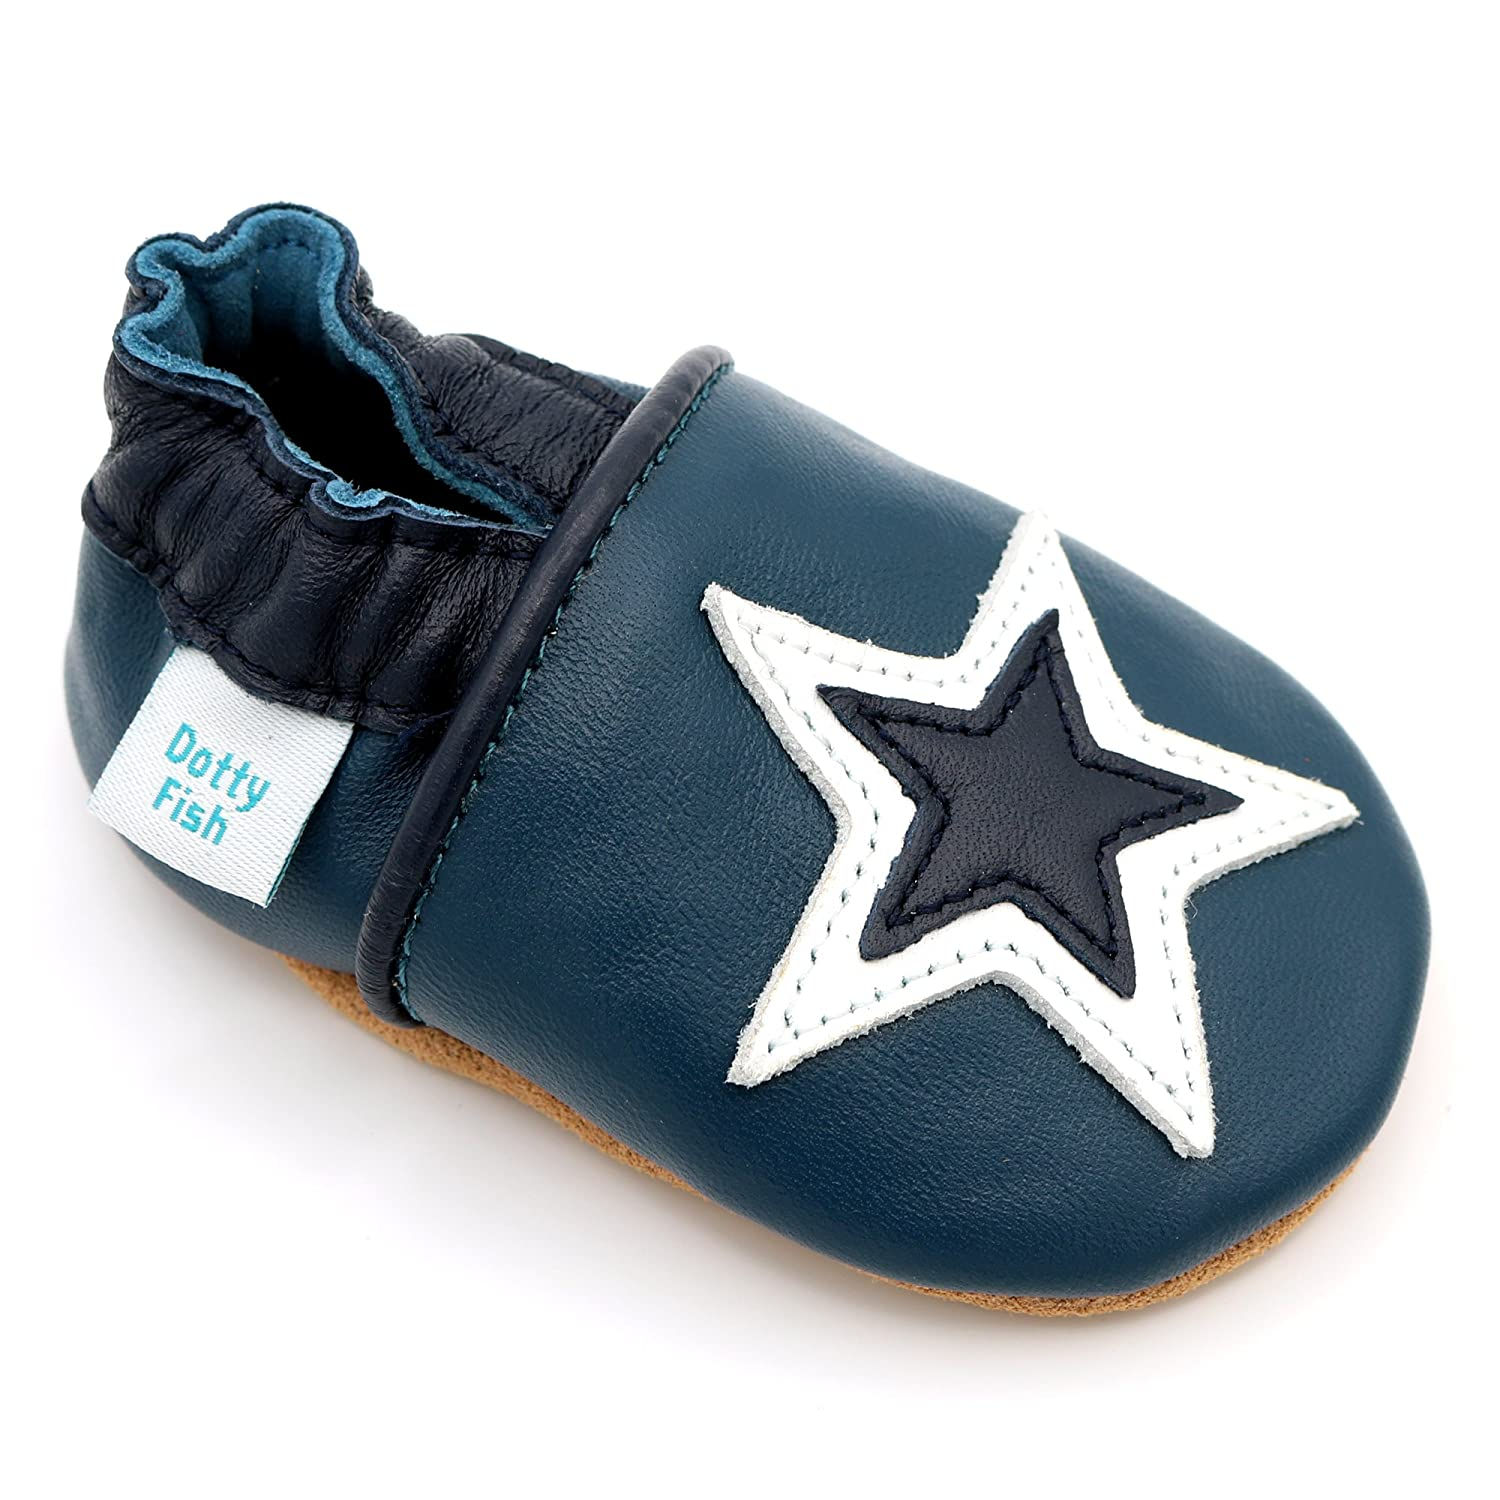 Amazoncom Dotty Fish  Boys Soft Leather Baby  Toddler Shoes with Suede  Soles  Navy  White Star  34 Years US Child Size 10 Baby